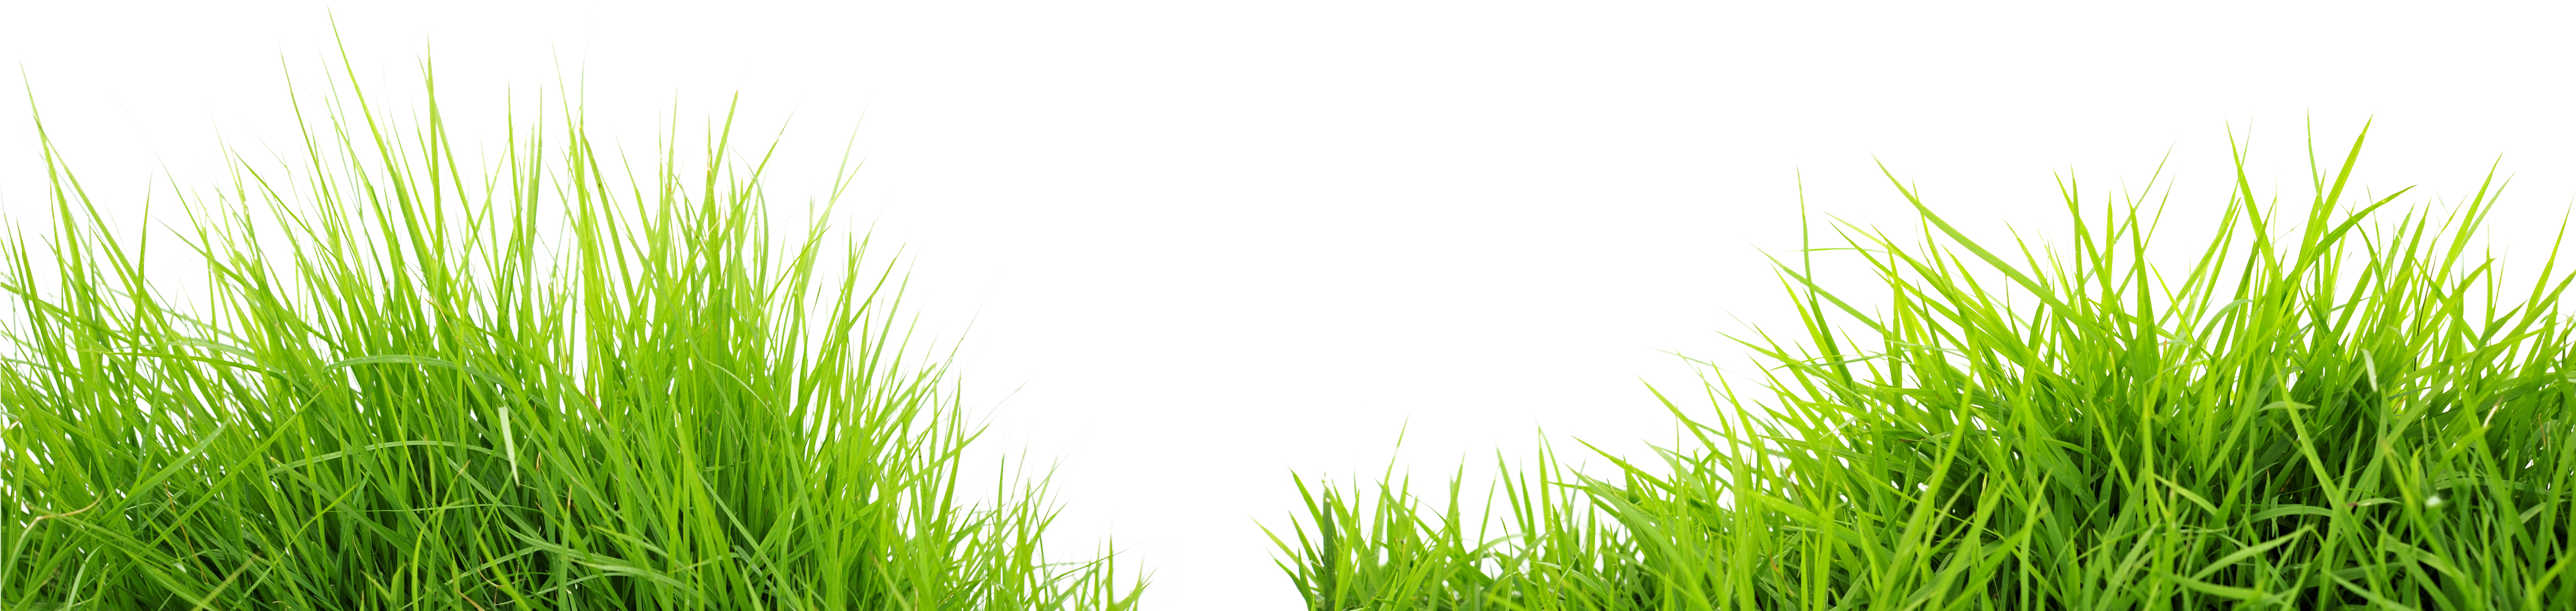 banner black and white library Grass and sky background clipart. Png image purepng free